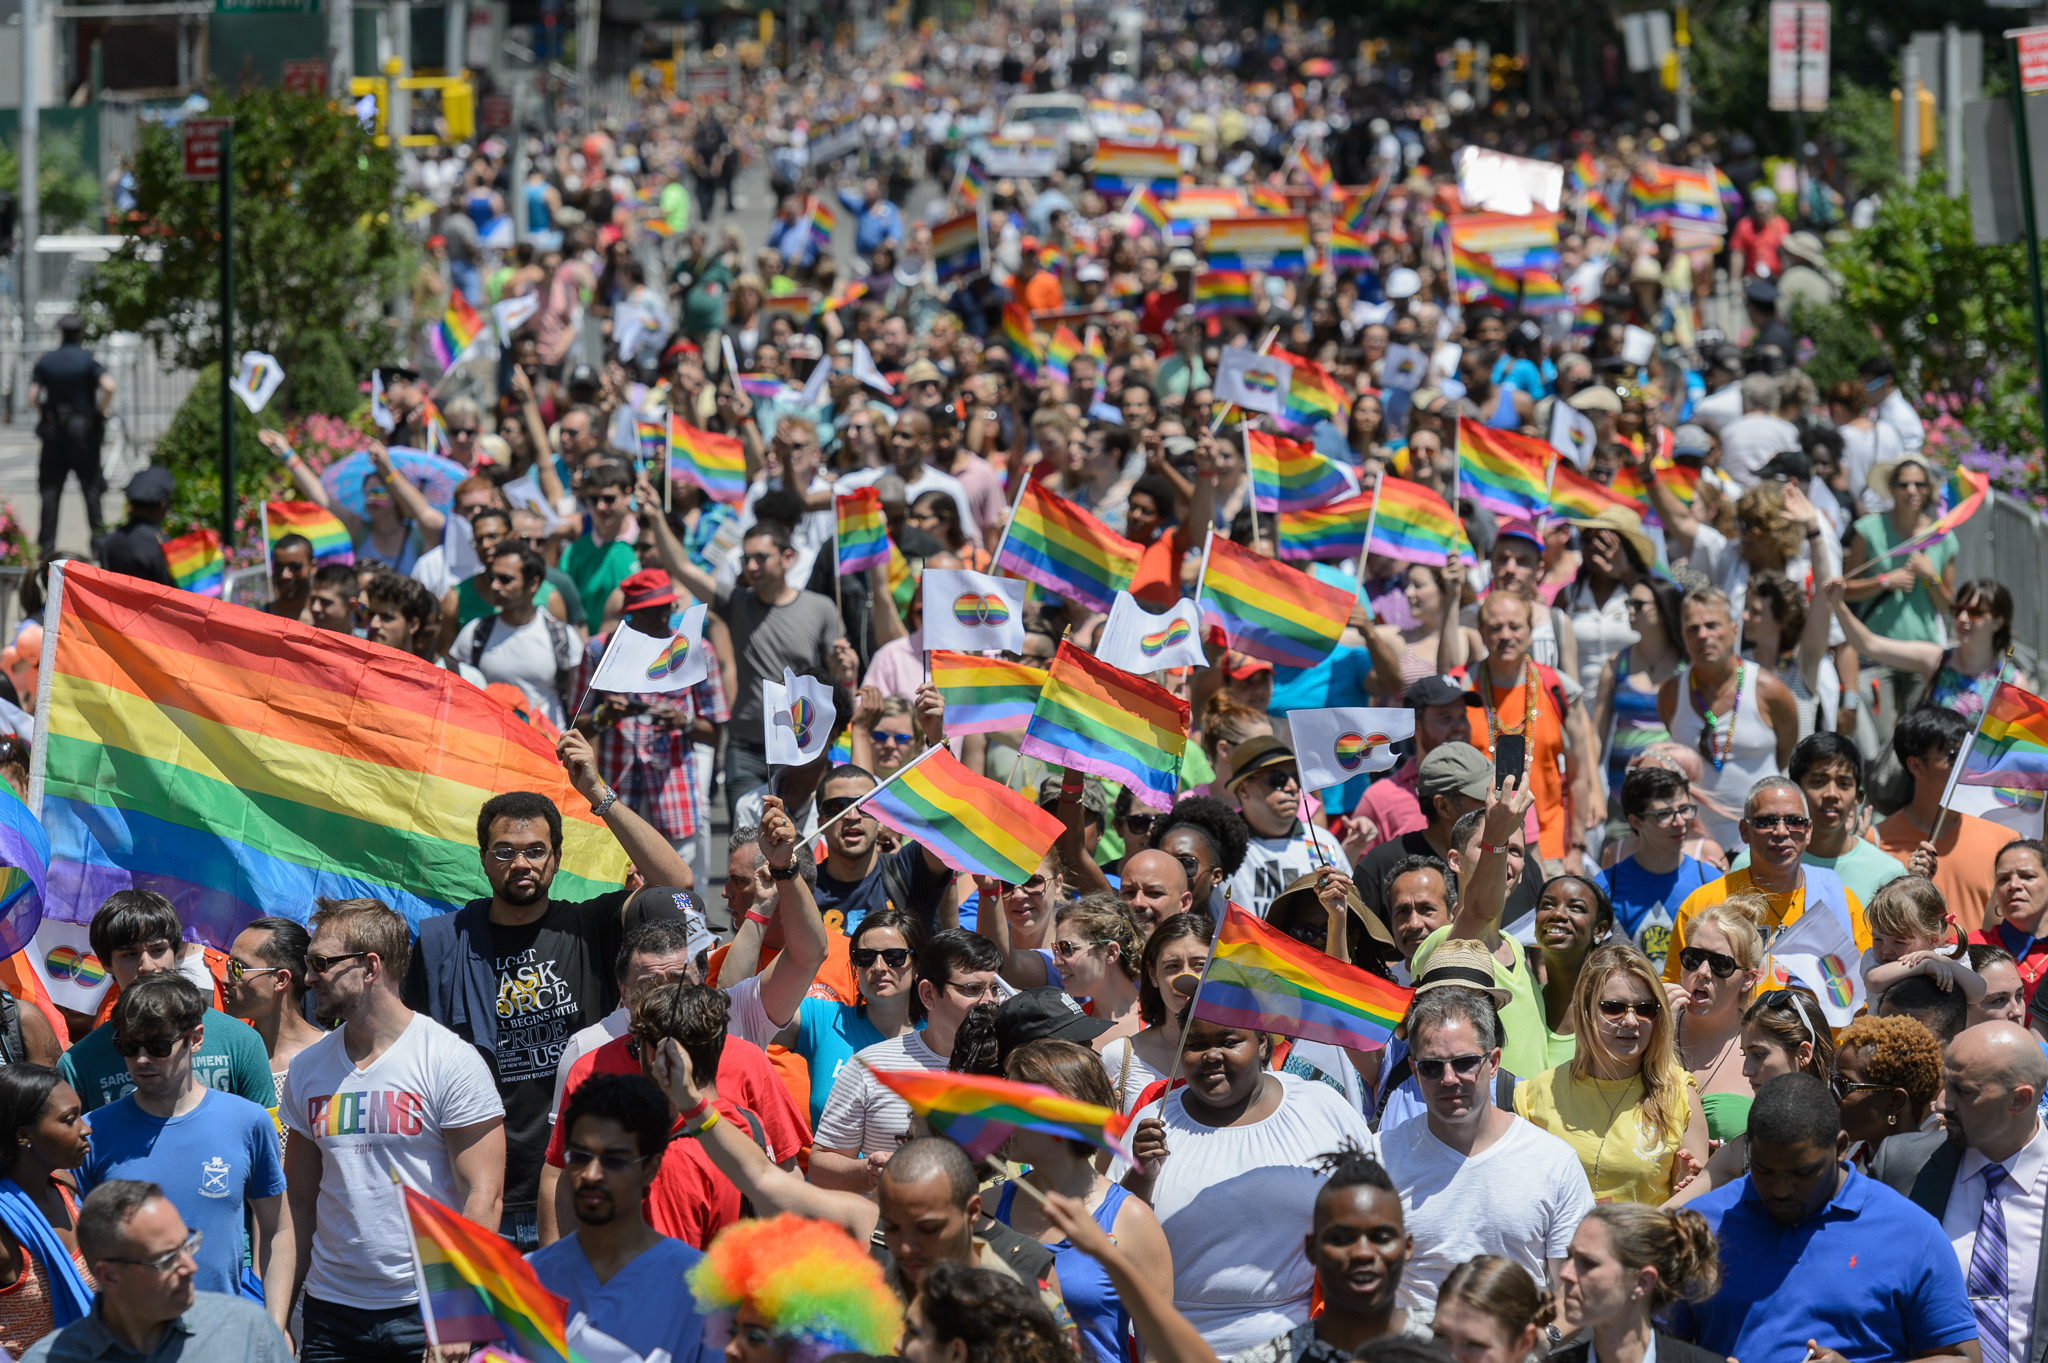 Gay Pride parade in NYC